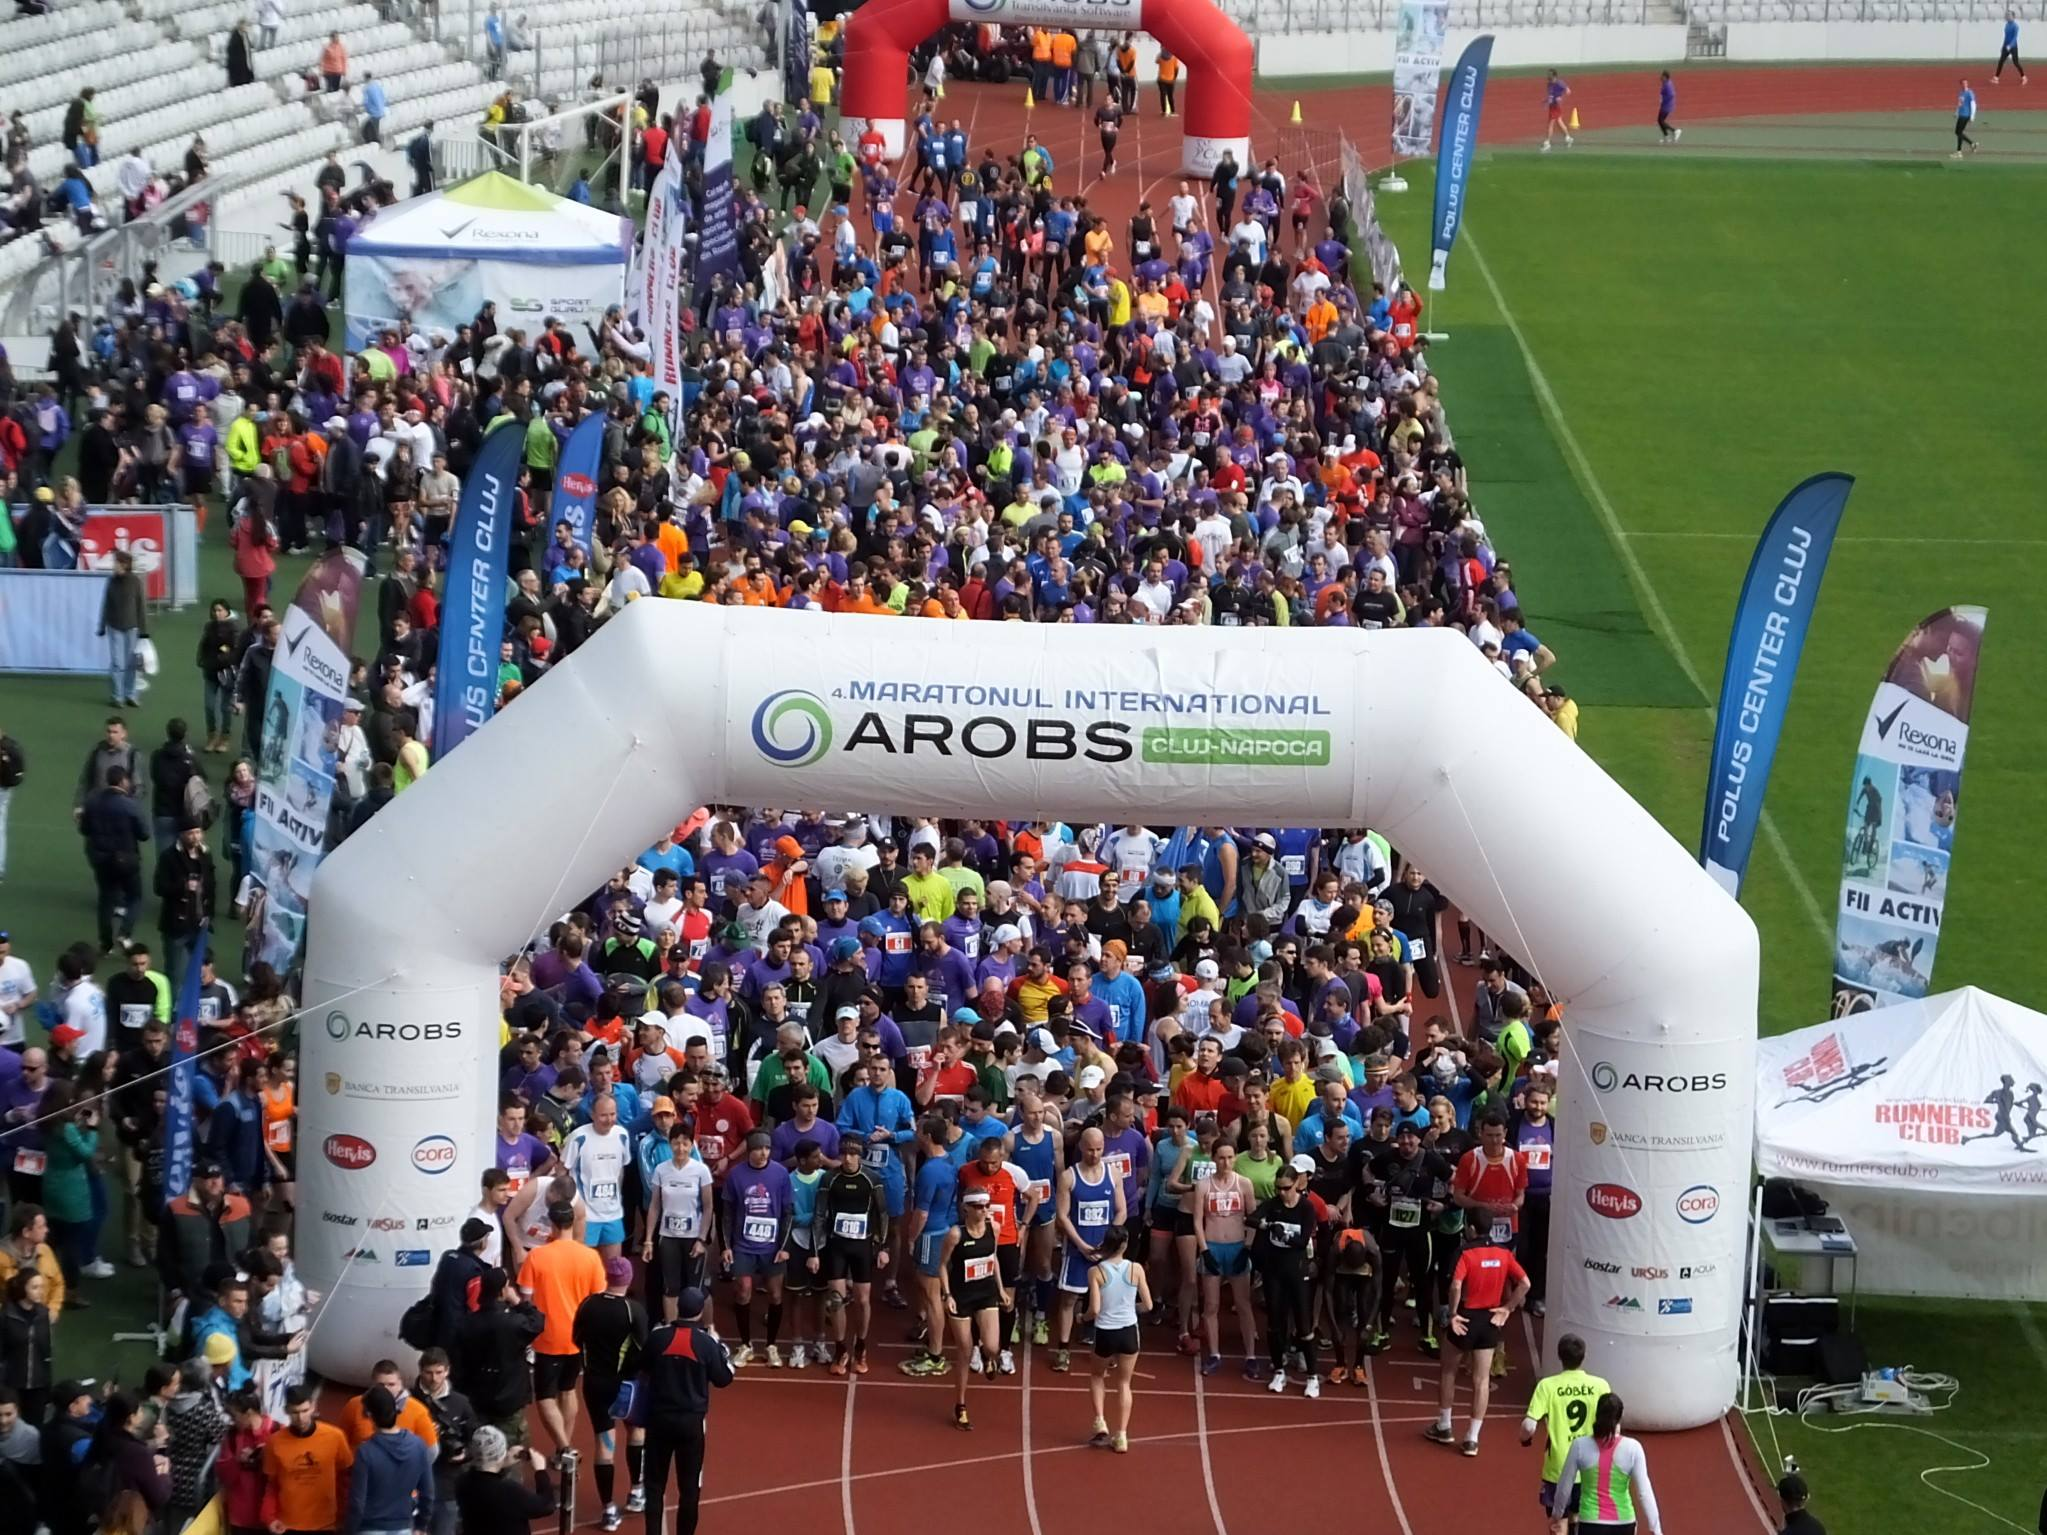 maratonul international cluj